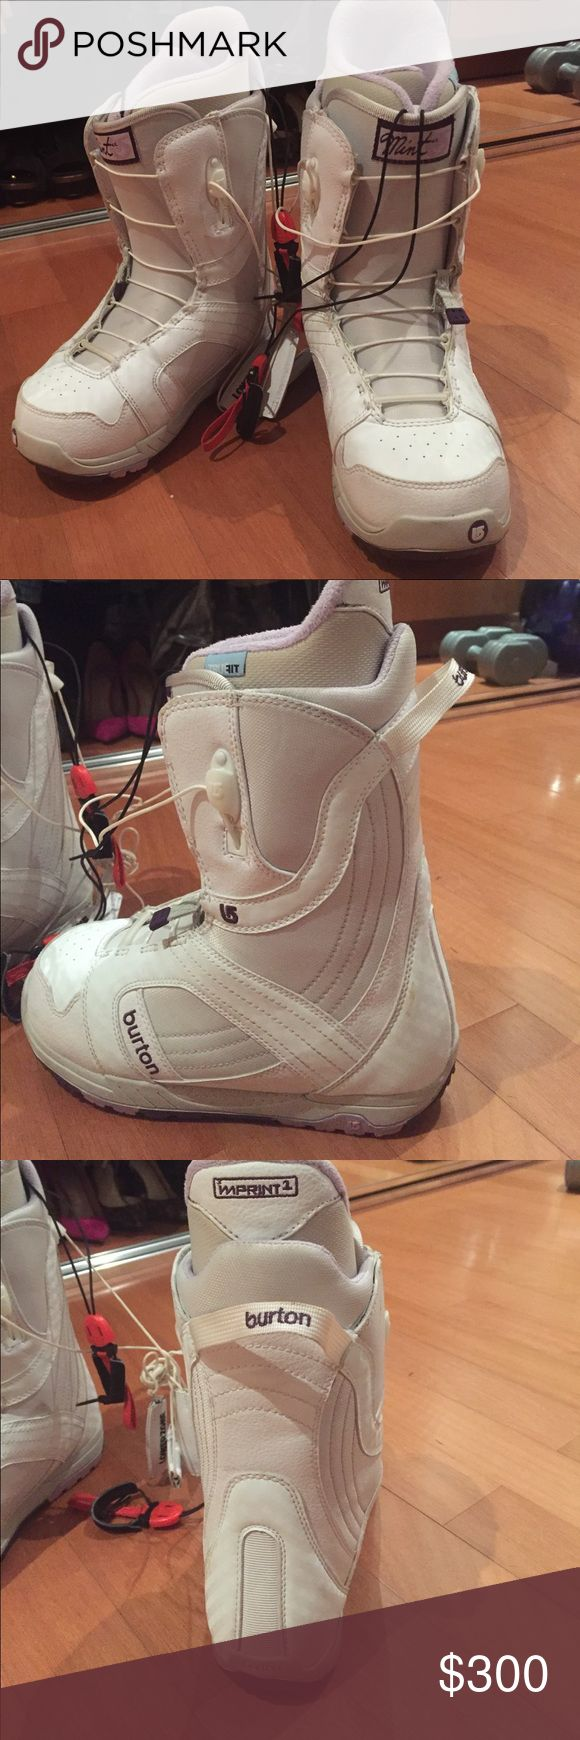 Burton Snowboard Boots Burton Mint Original Snowboard Boots. Only used twice. In excellent condition. No marks, no scratches. Please let me know if you need more pictures. No original box Burton Other